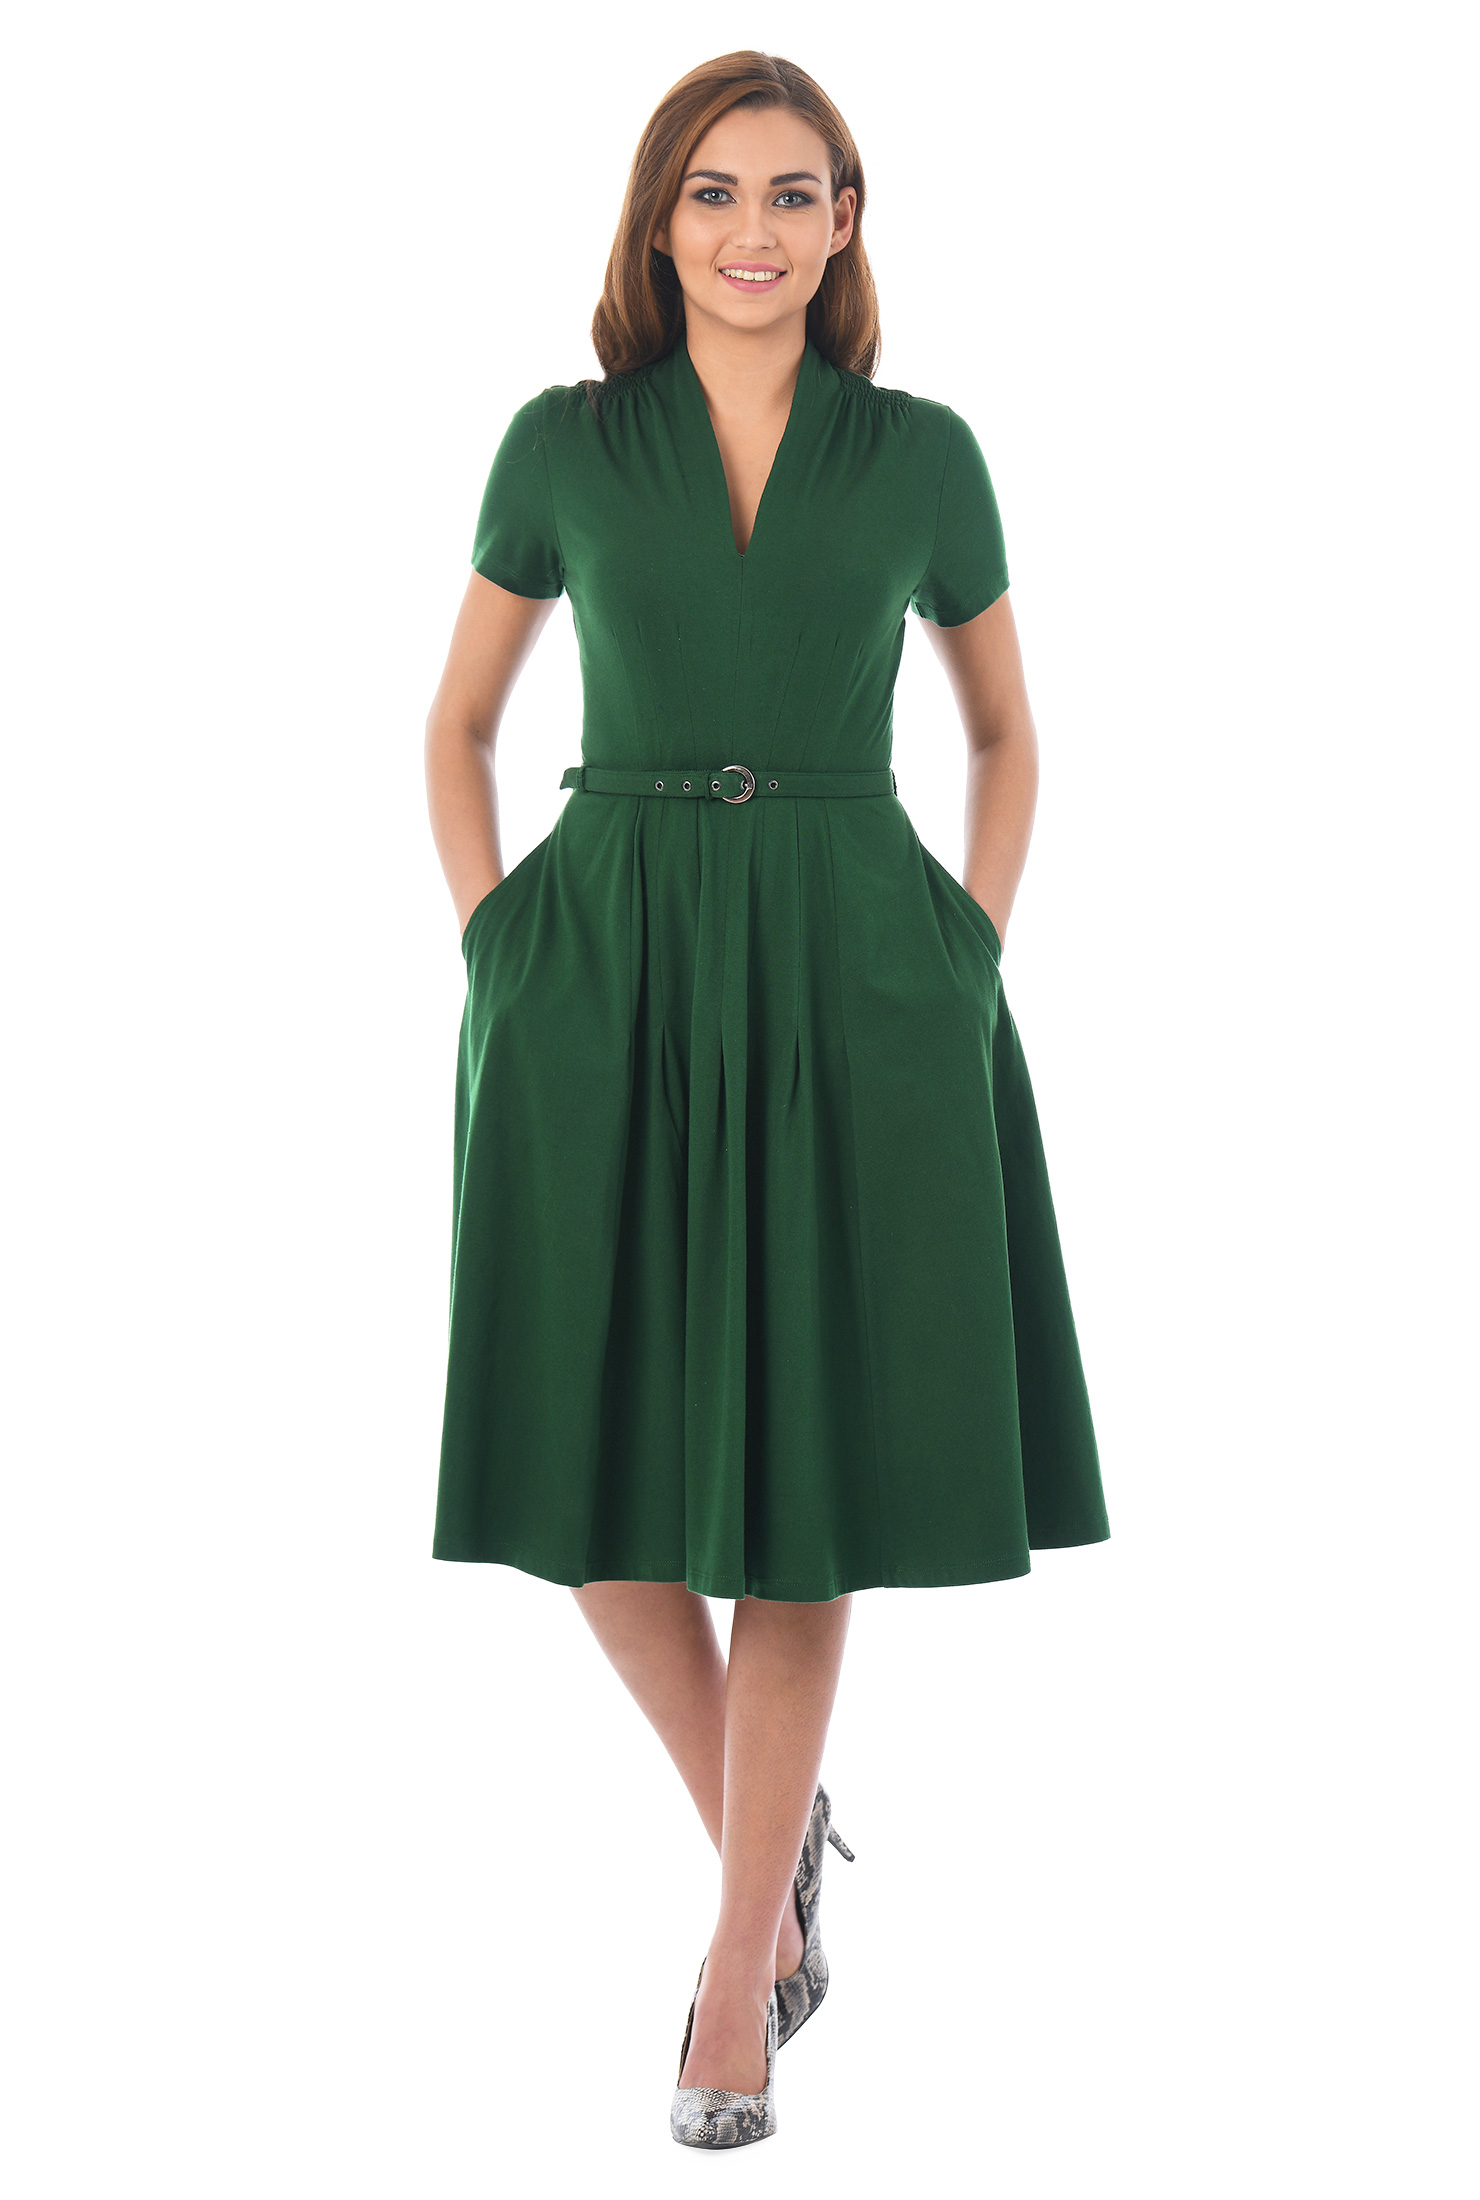 eShakti Women's Cotton jersey knit belted dress